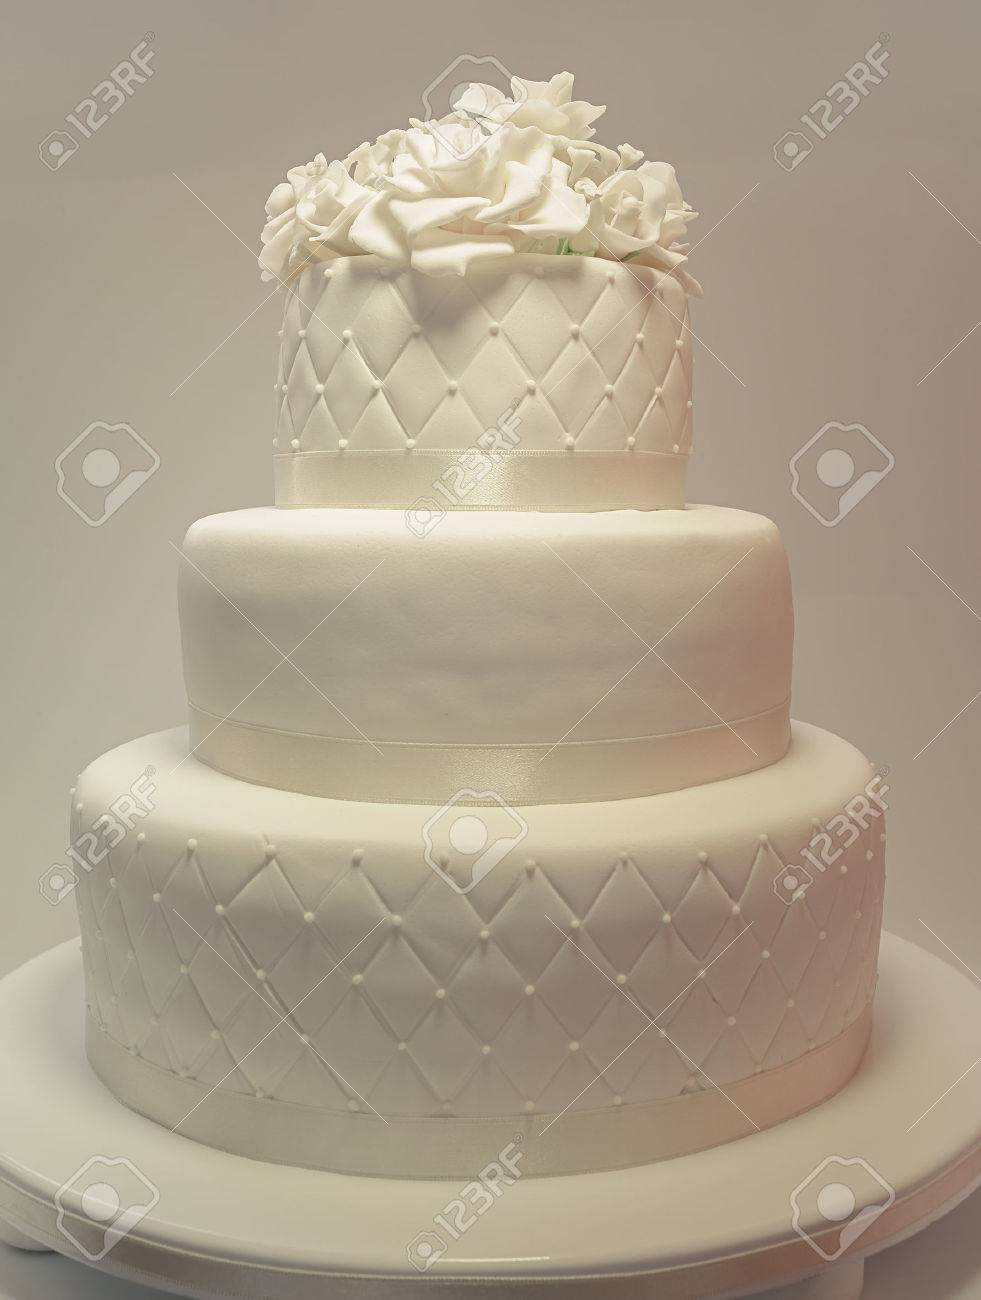 Details Of A Wedding Cake Decoration With White Fondant On White